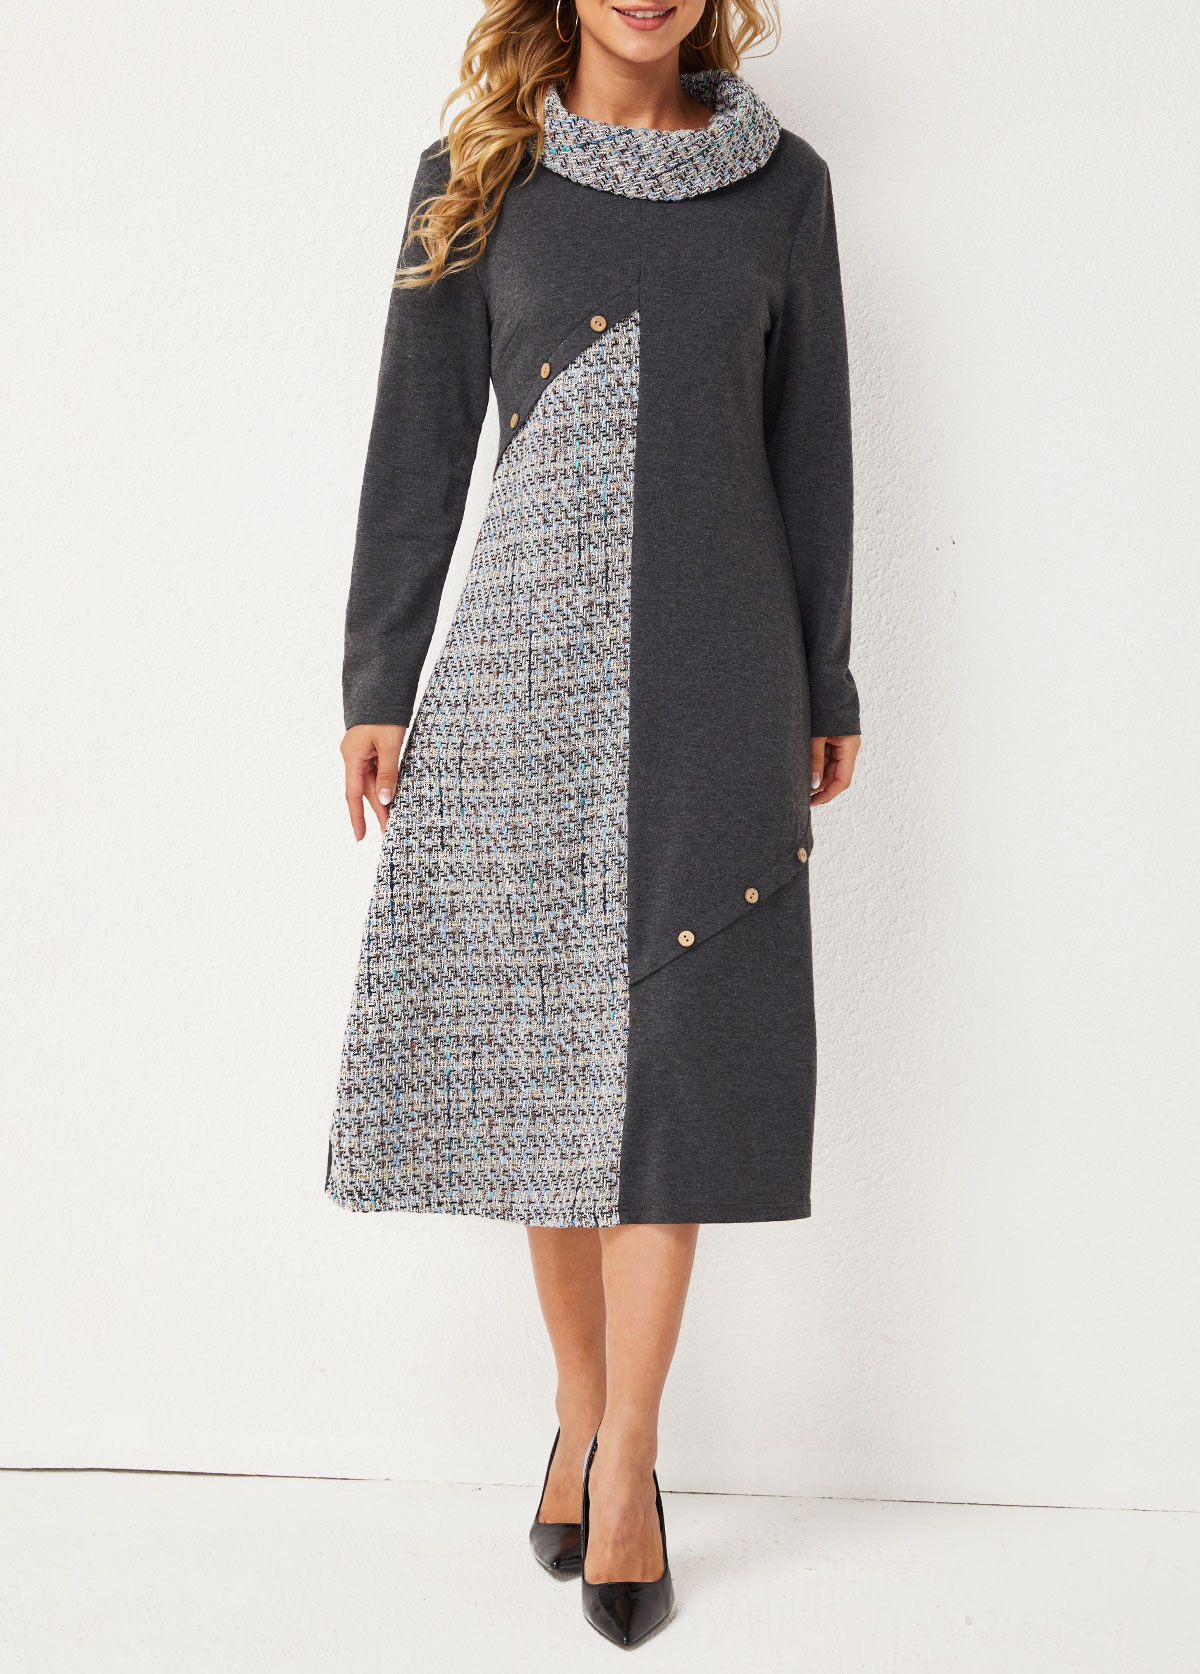 Inclined Button Cowl Neck Contrast Dress